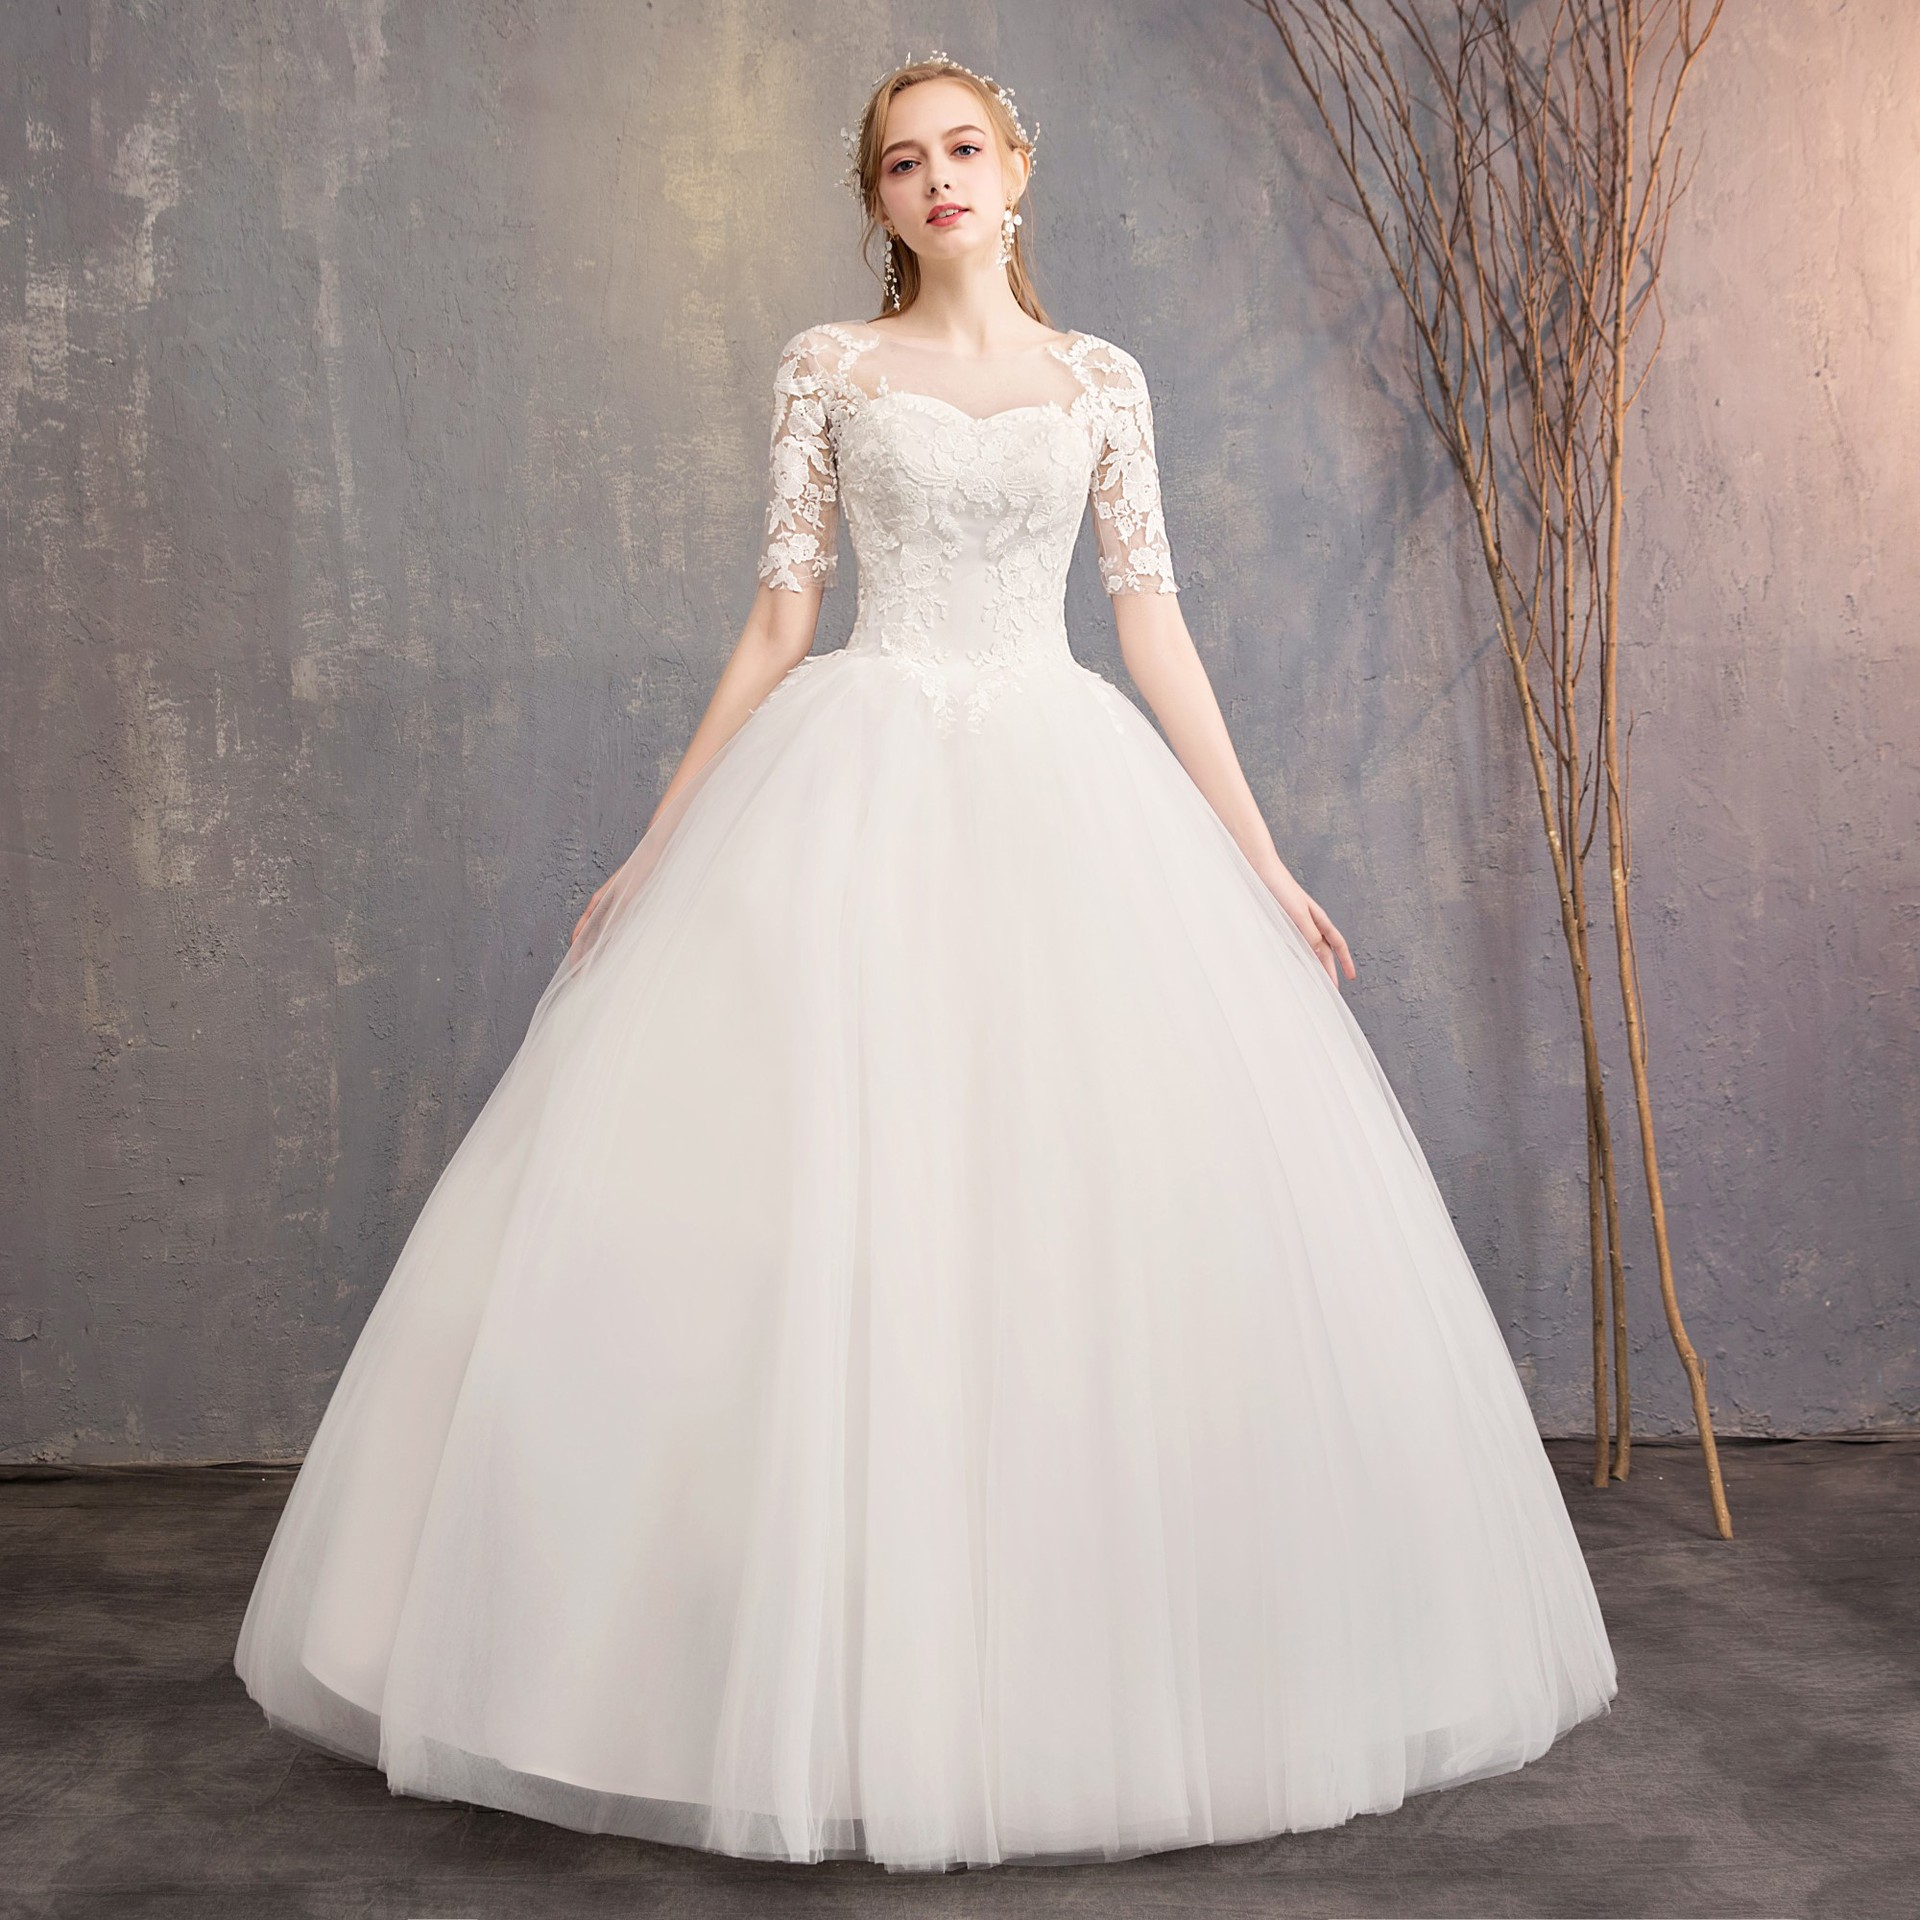 New Arrival Do Dower Full Sleeve Wedding Dress 2019 Ball Gown Flare Sleeve Princess Simple Wedding Dresses China Bridal Gowns